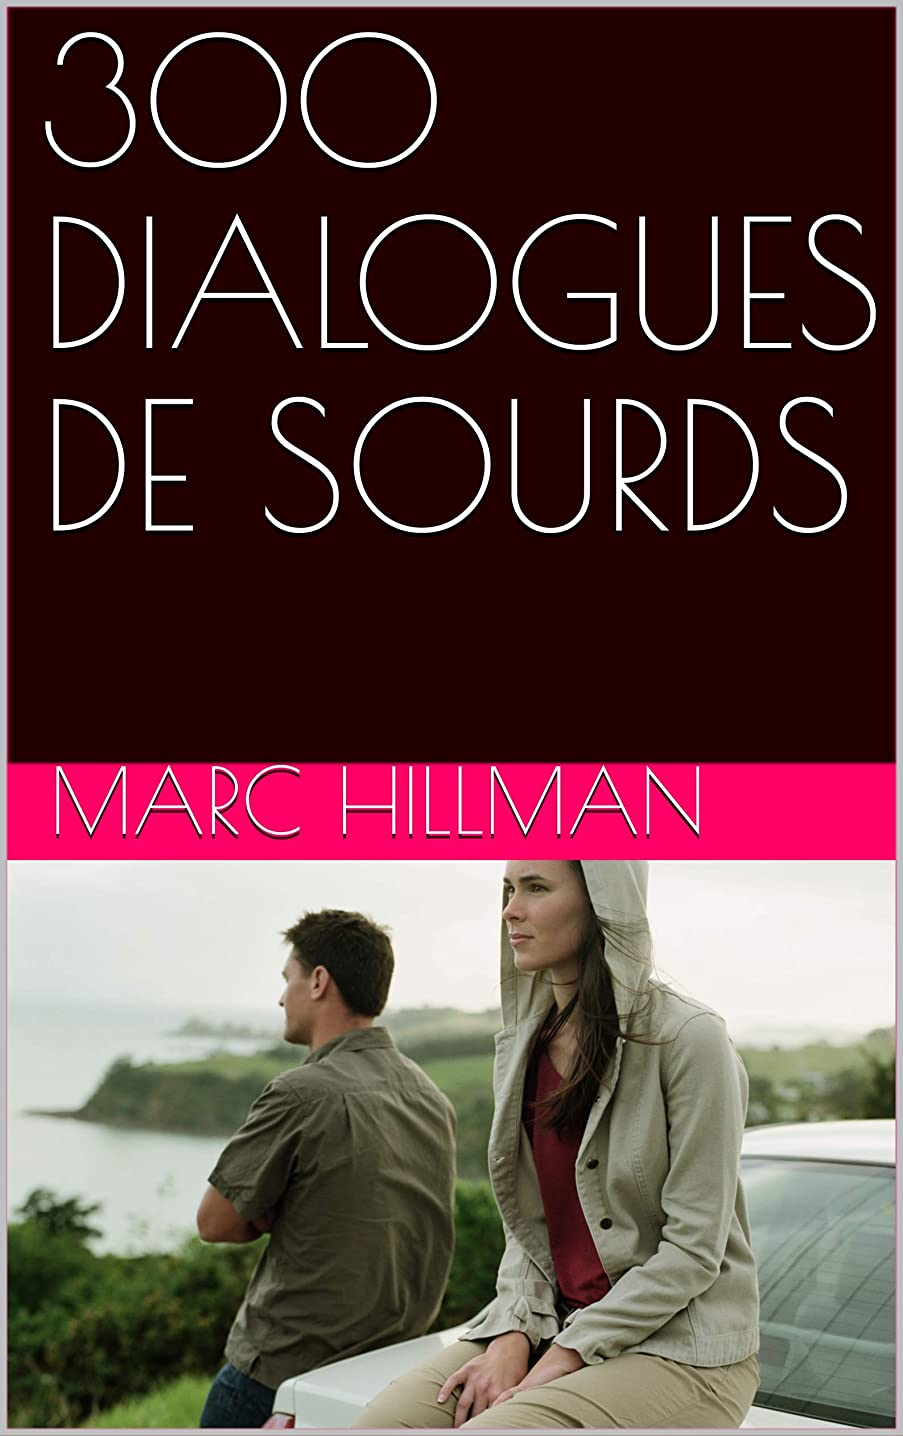 ホイップインド食料品店300 DIALOGUES DE SOURDS (French Edition)